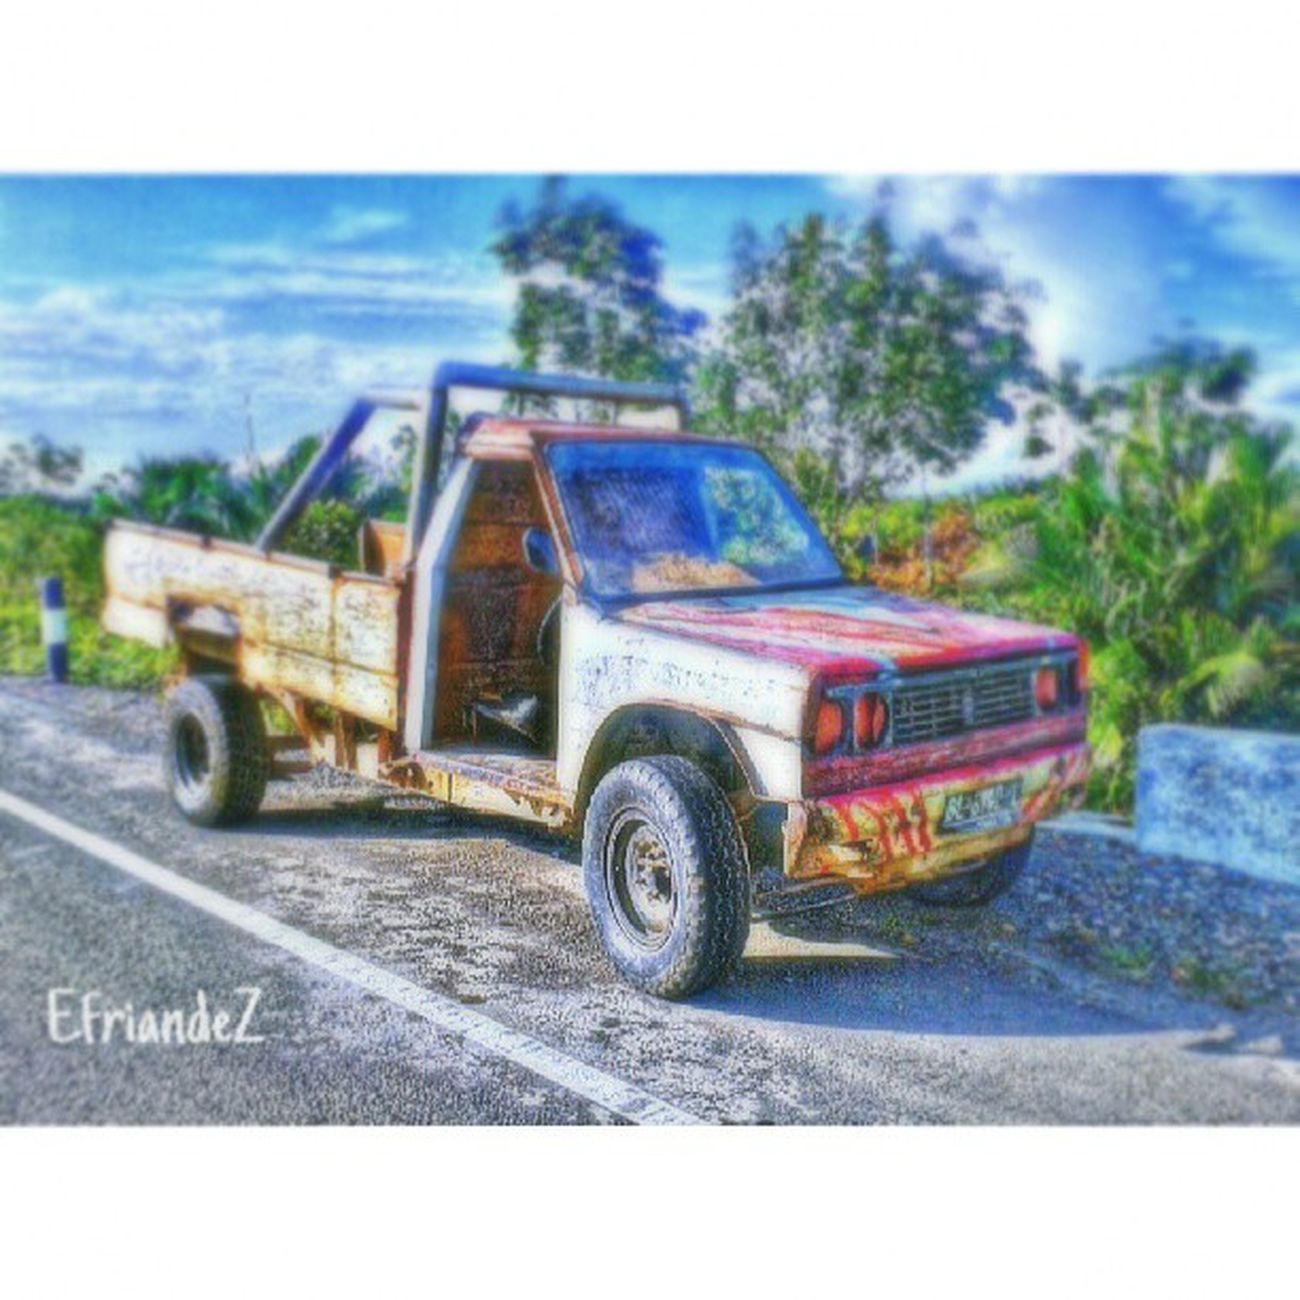 Need pimp -------------------------- Oldtruk HDR_Indonesia Hdrart Gf_indonesia  gang_family instagram instamod instalover like